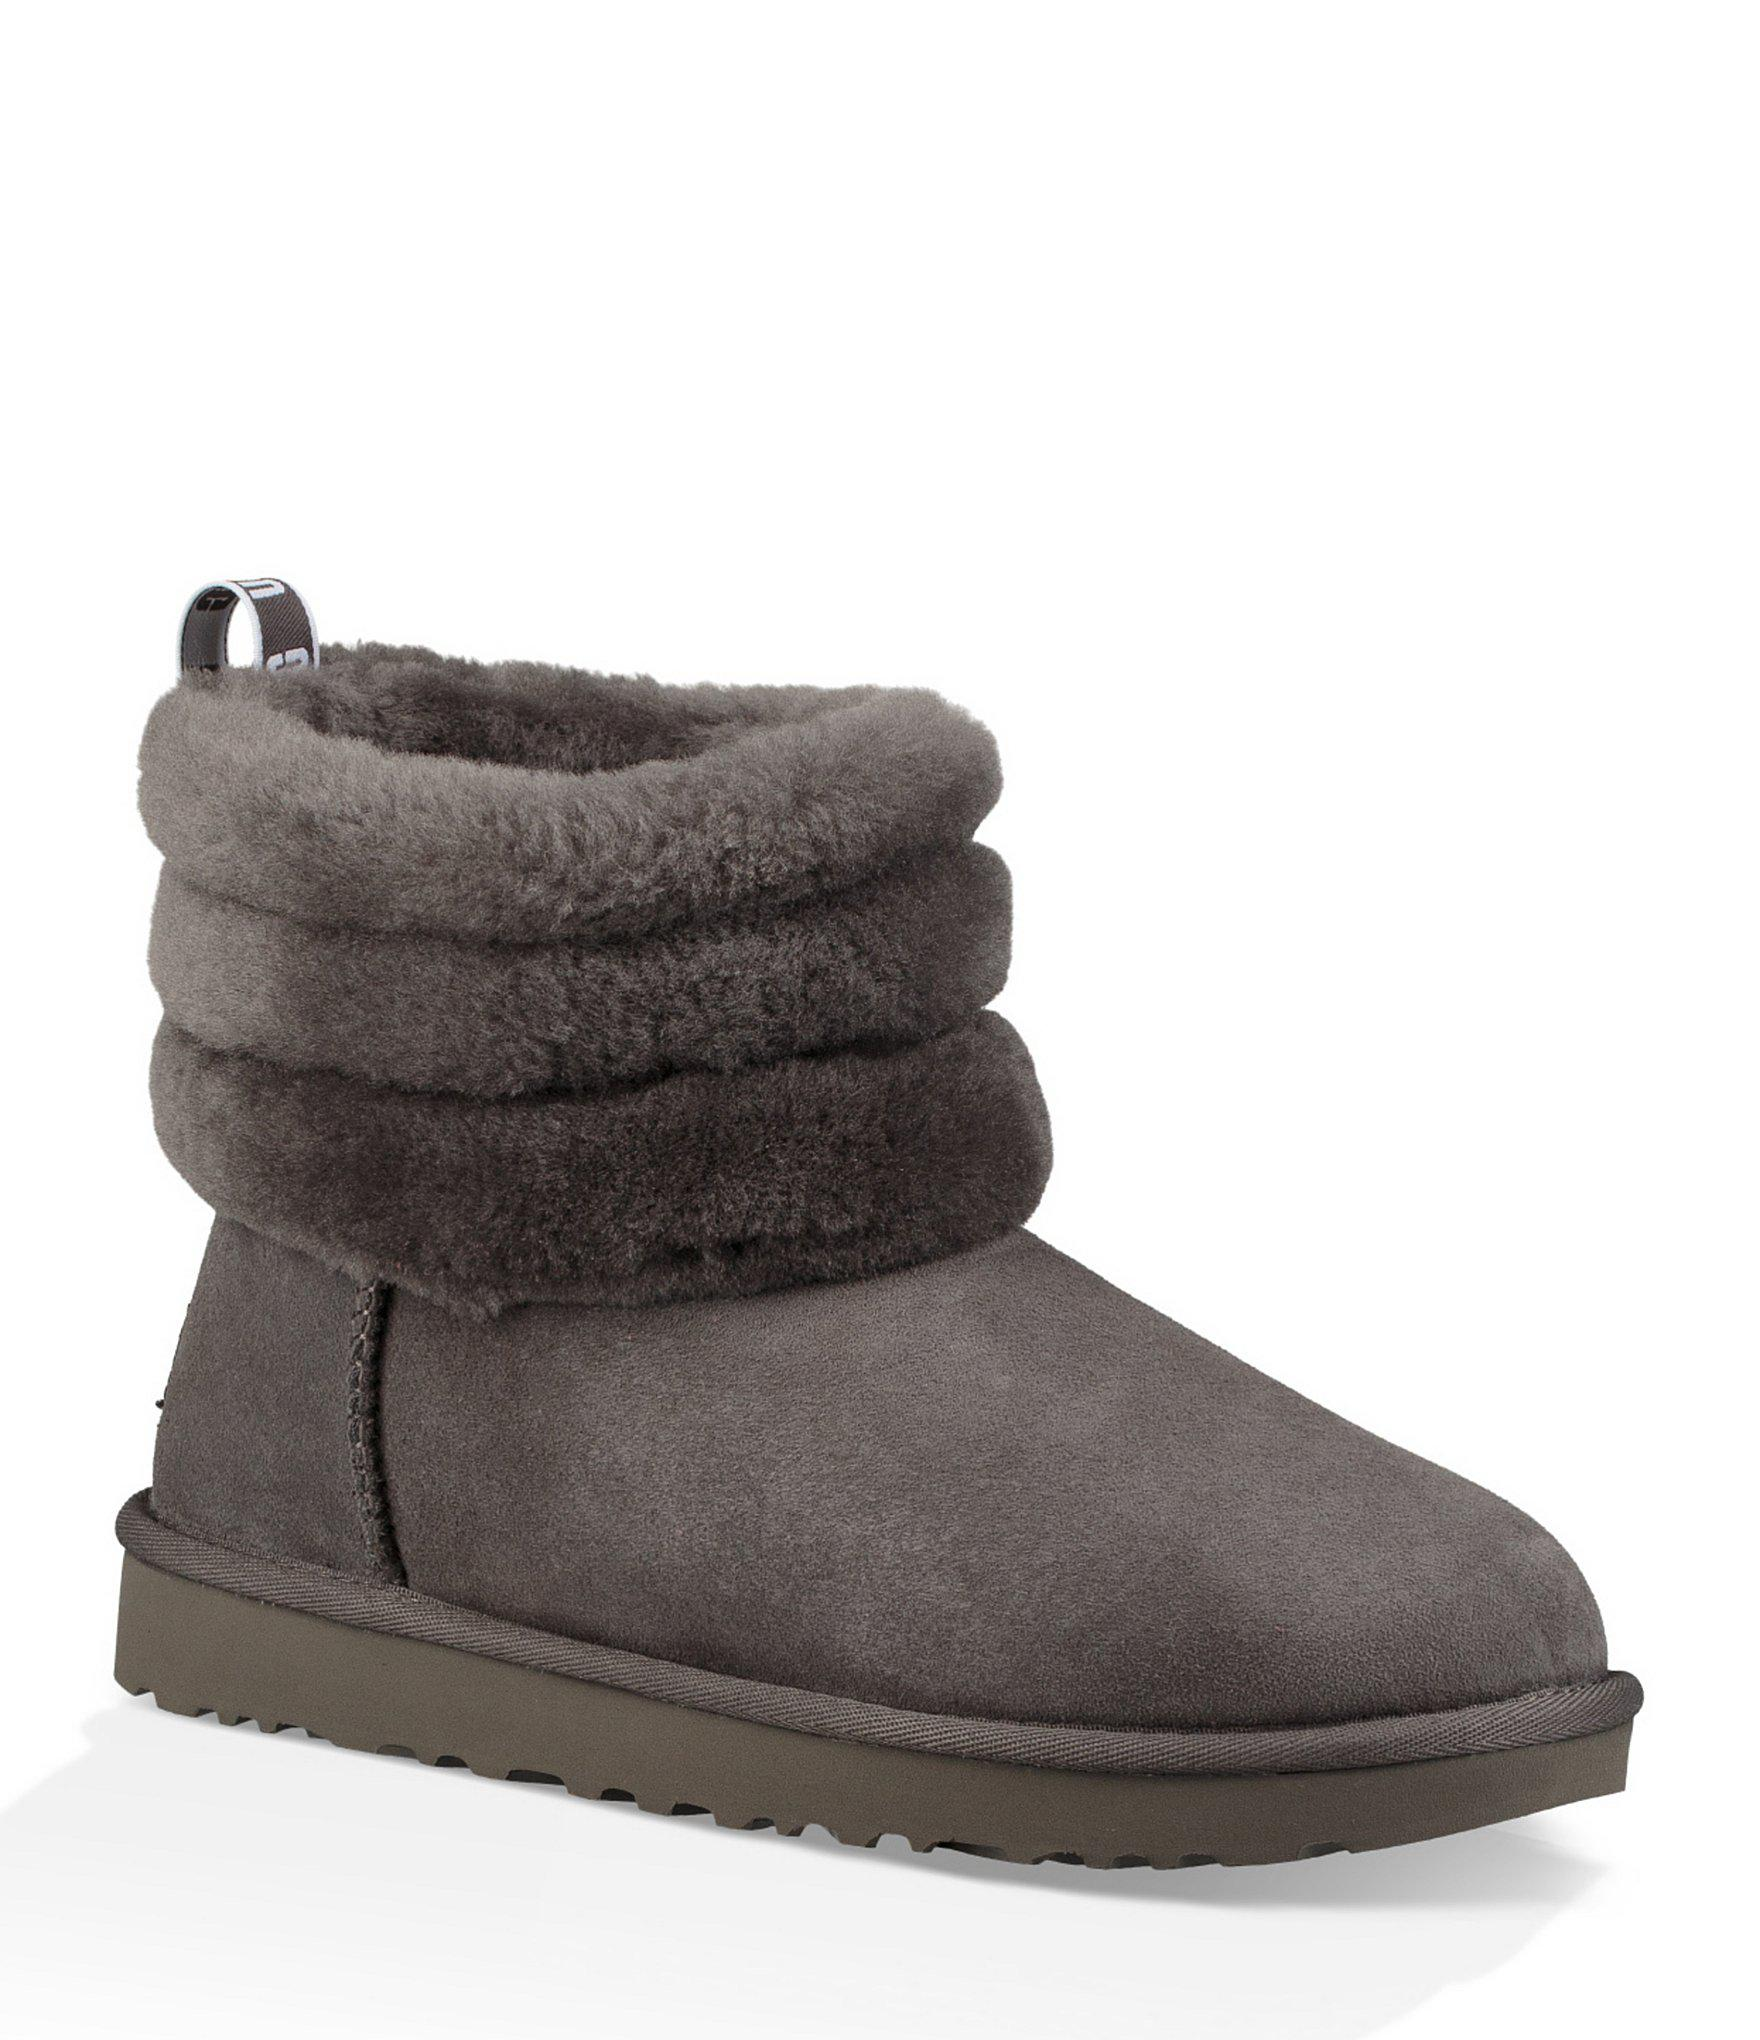 3db439d29c5 Women's Gray Ugg Classic Mini Fluff Quilted Boot